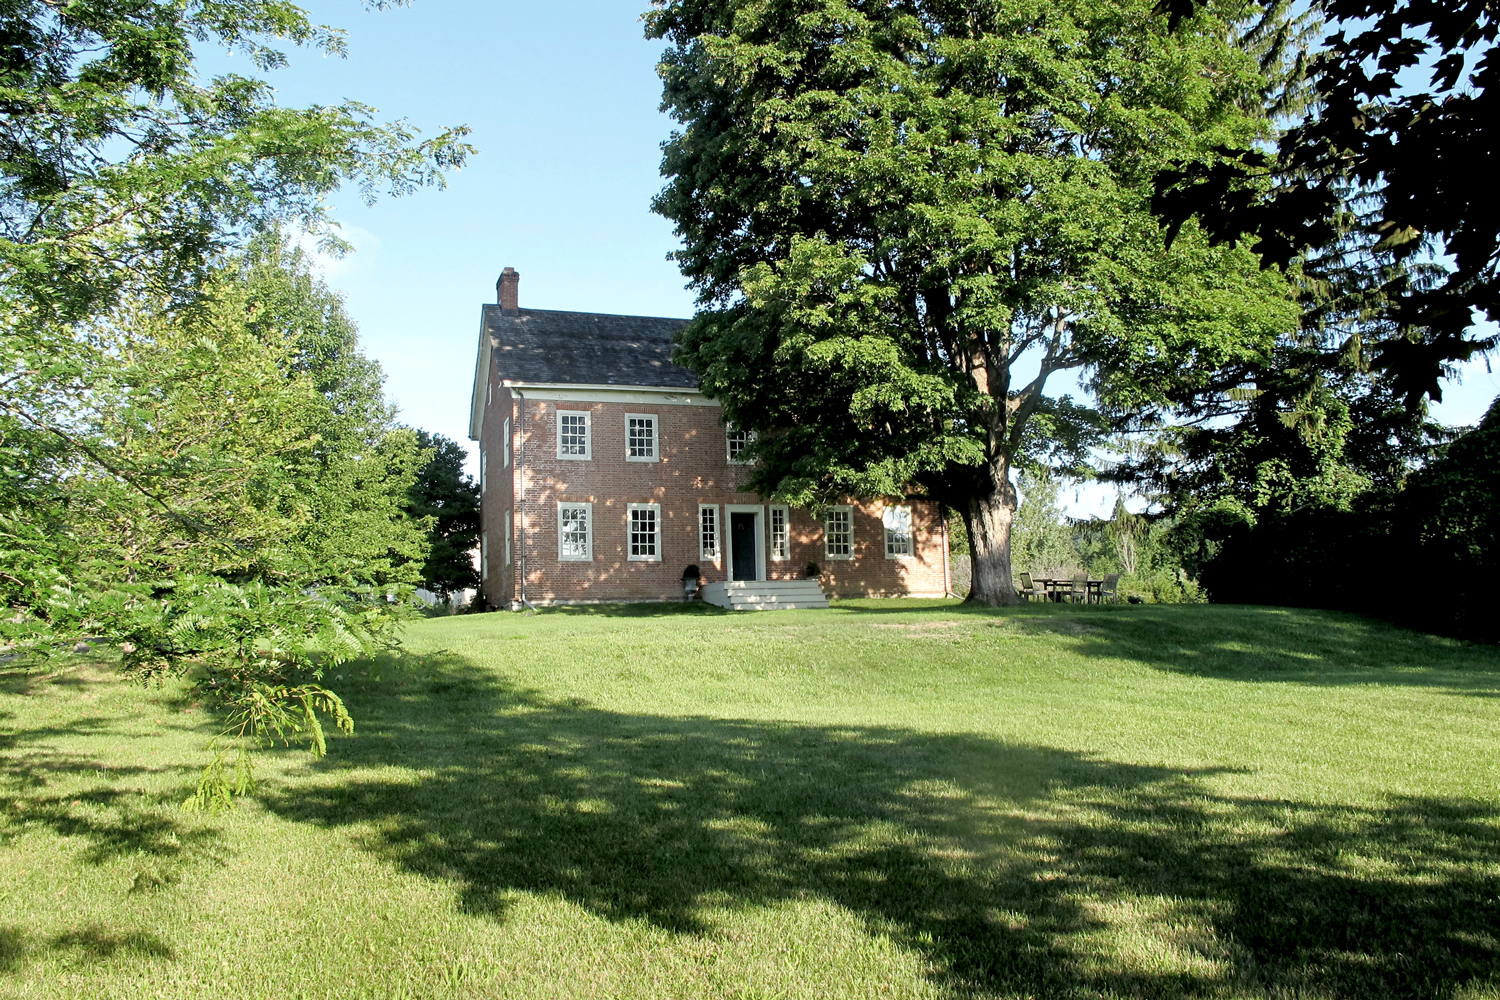 air bnb wedding venue new york manor house surrounded by trees